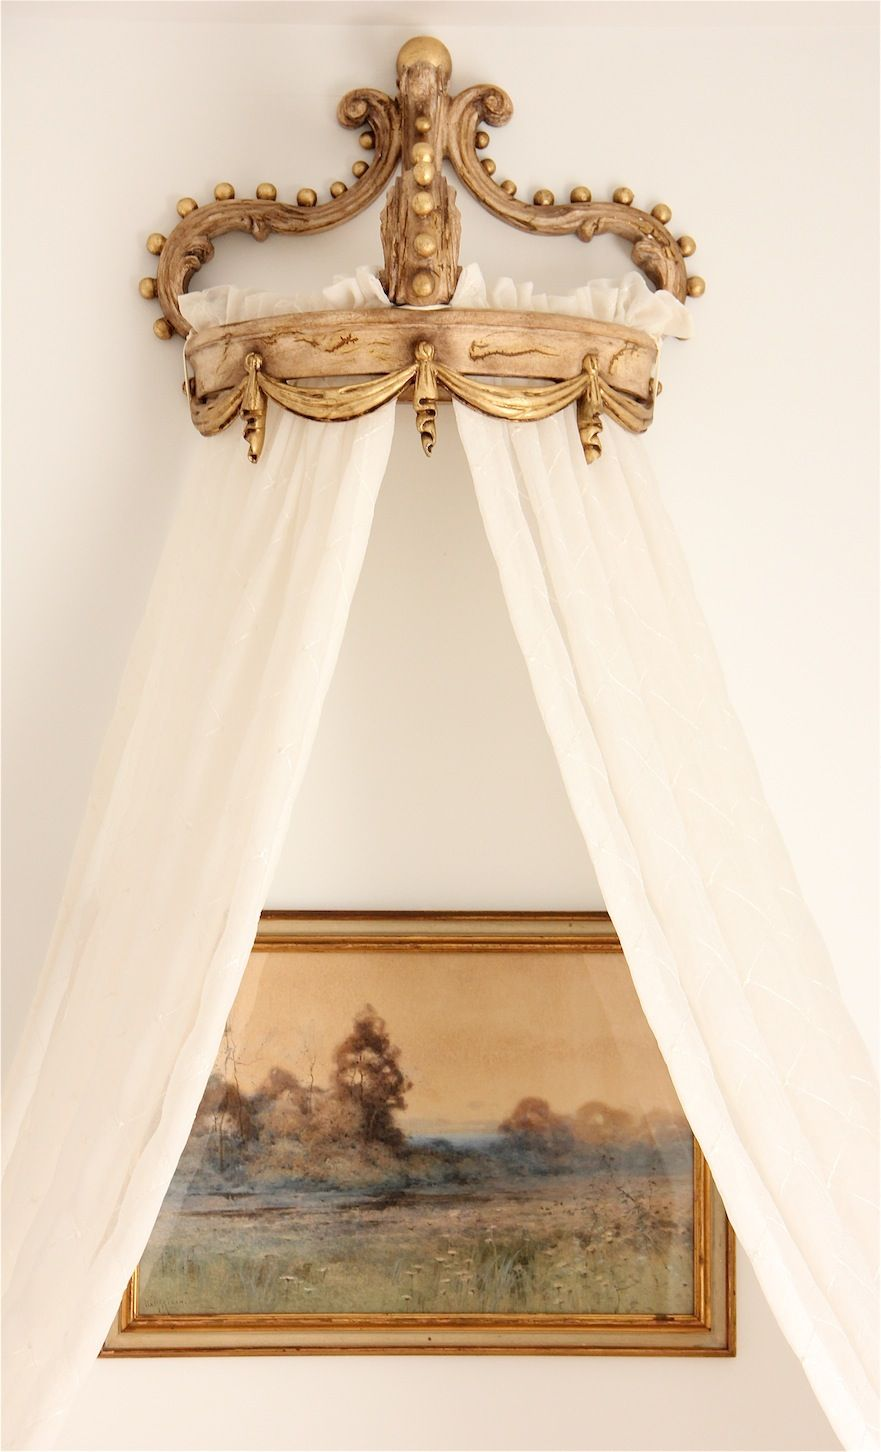 wall mounted bed canopy crown on castles crowns and cottages bed crown bed crown canopy house interior pinterest